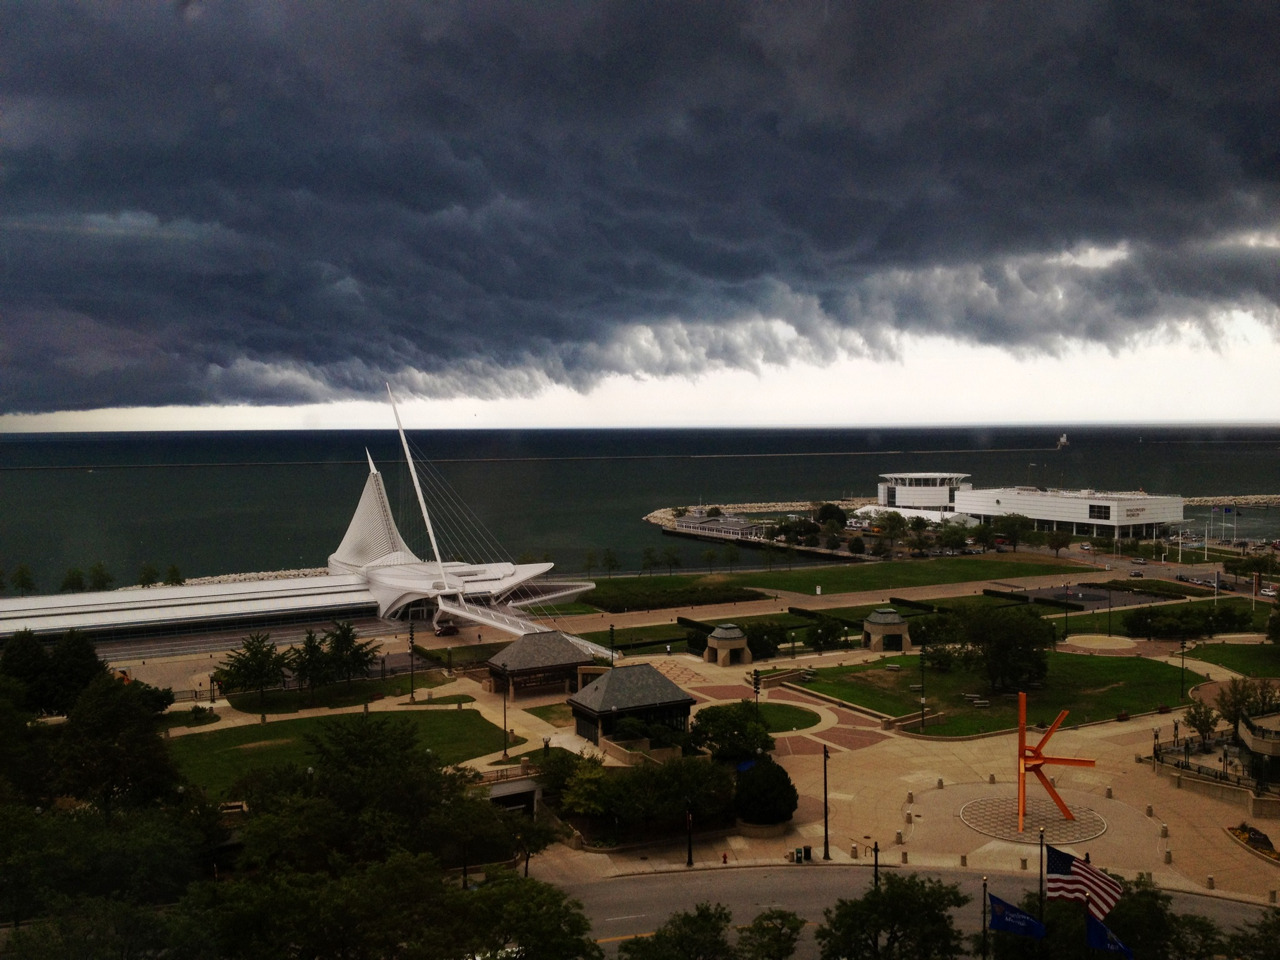 Picture looking outside Northwestern Mutual today before the storm.